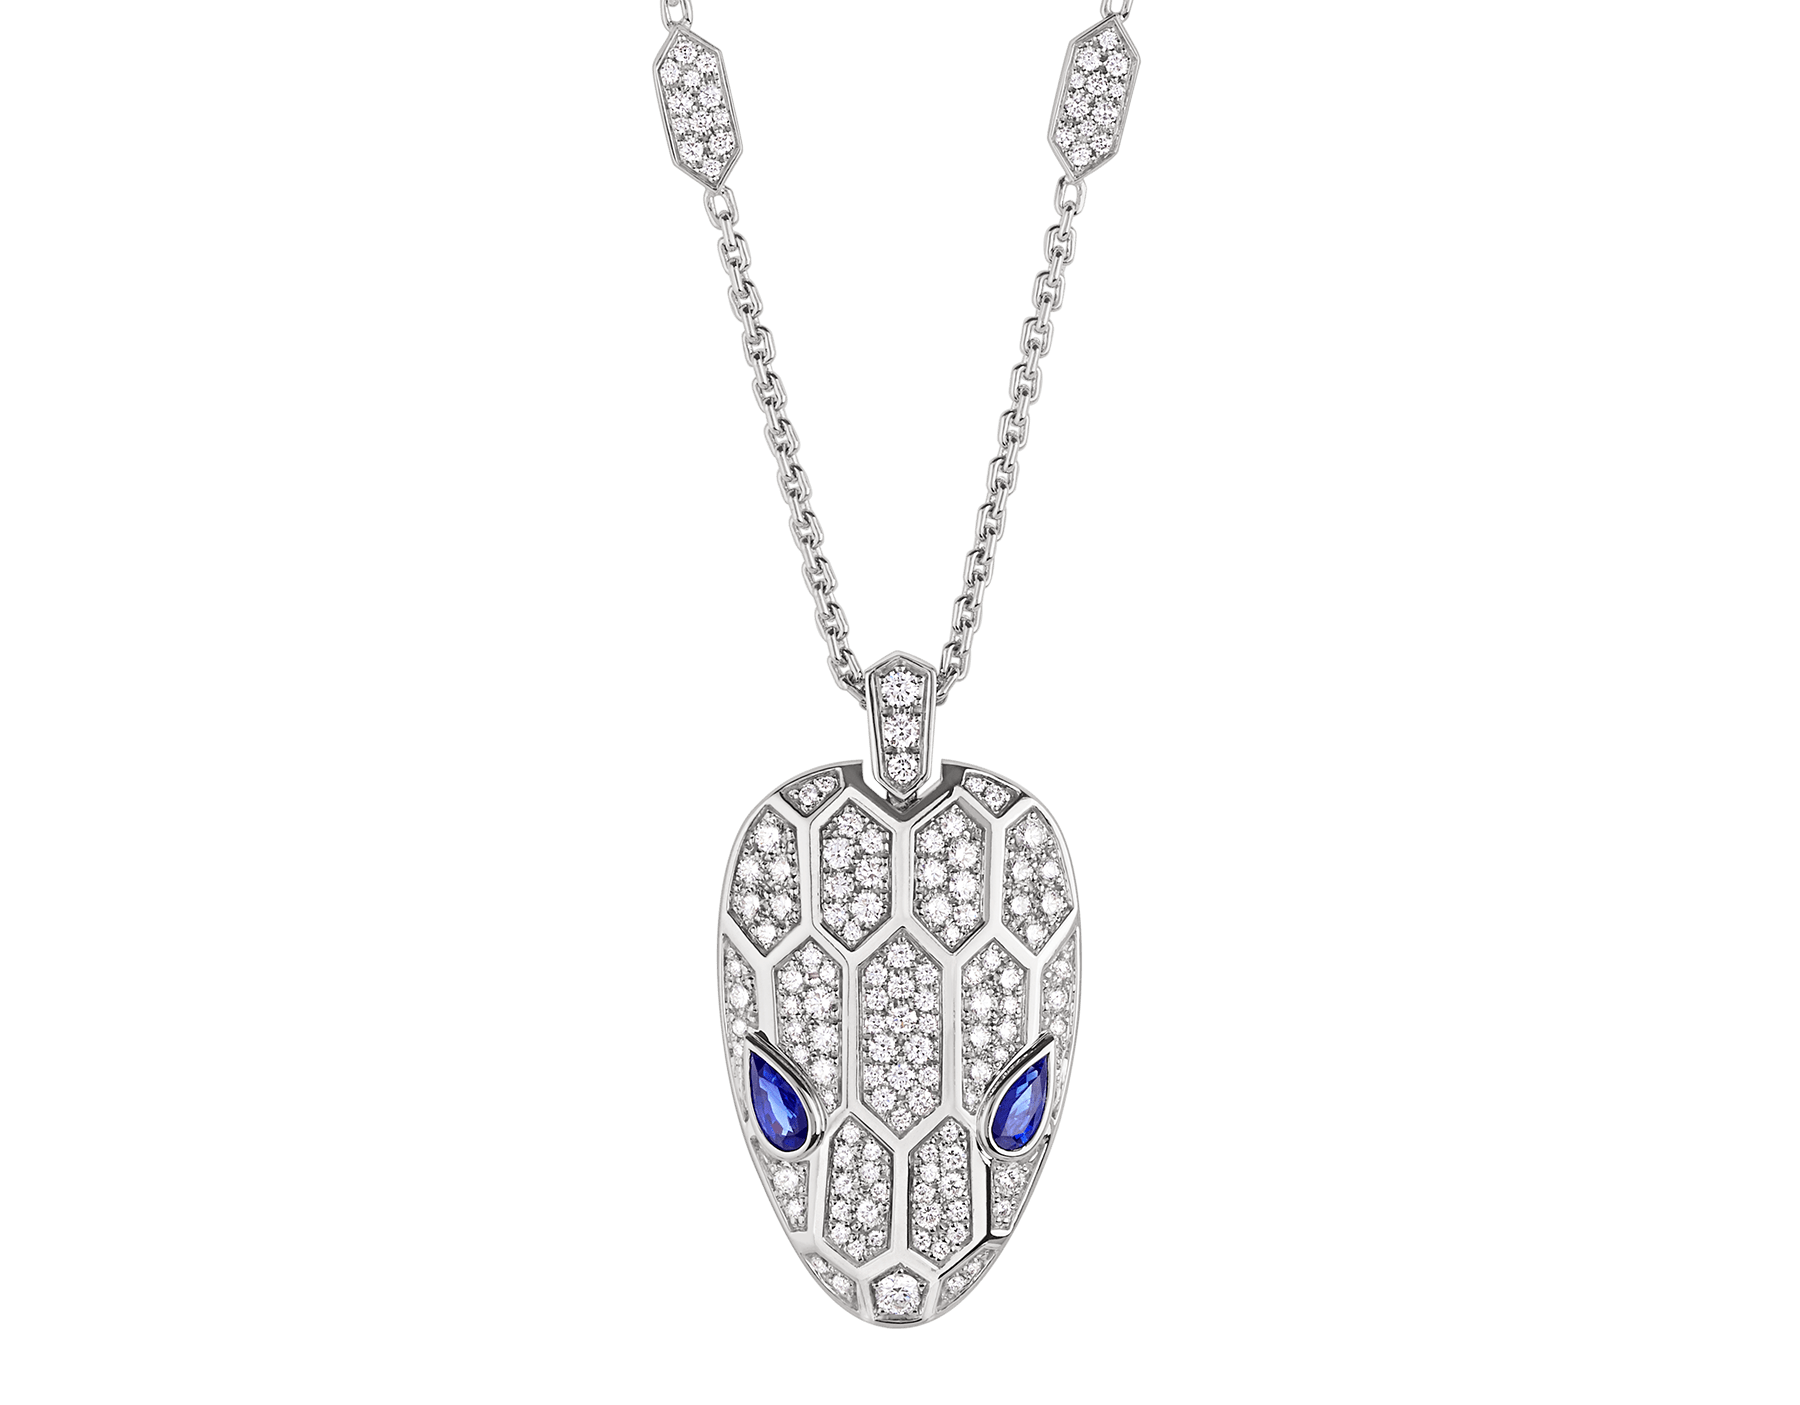 Serpenti necklace in 18 kt white gold set with blue sapphire eyes (0.78 ct) and pavé diamonds (2.16 ct) on both the chain and the pendant. 353529 image 1